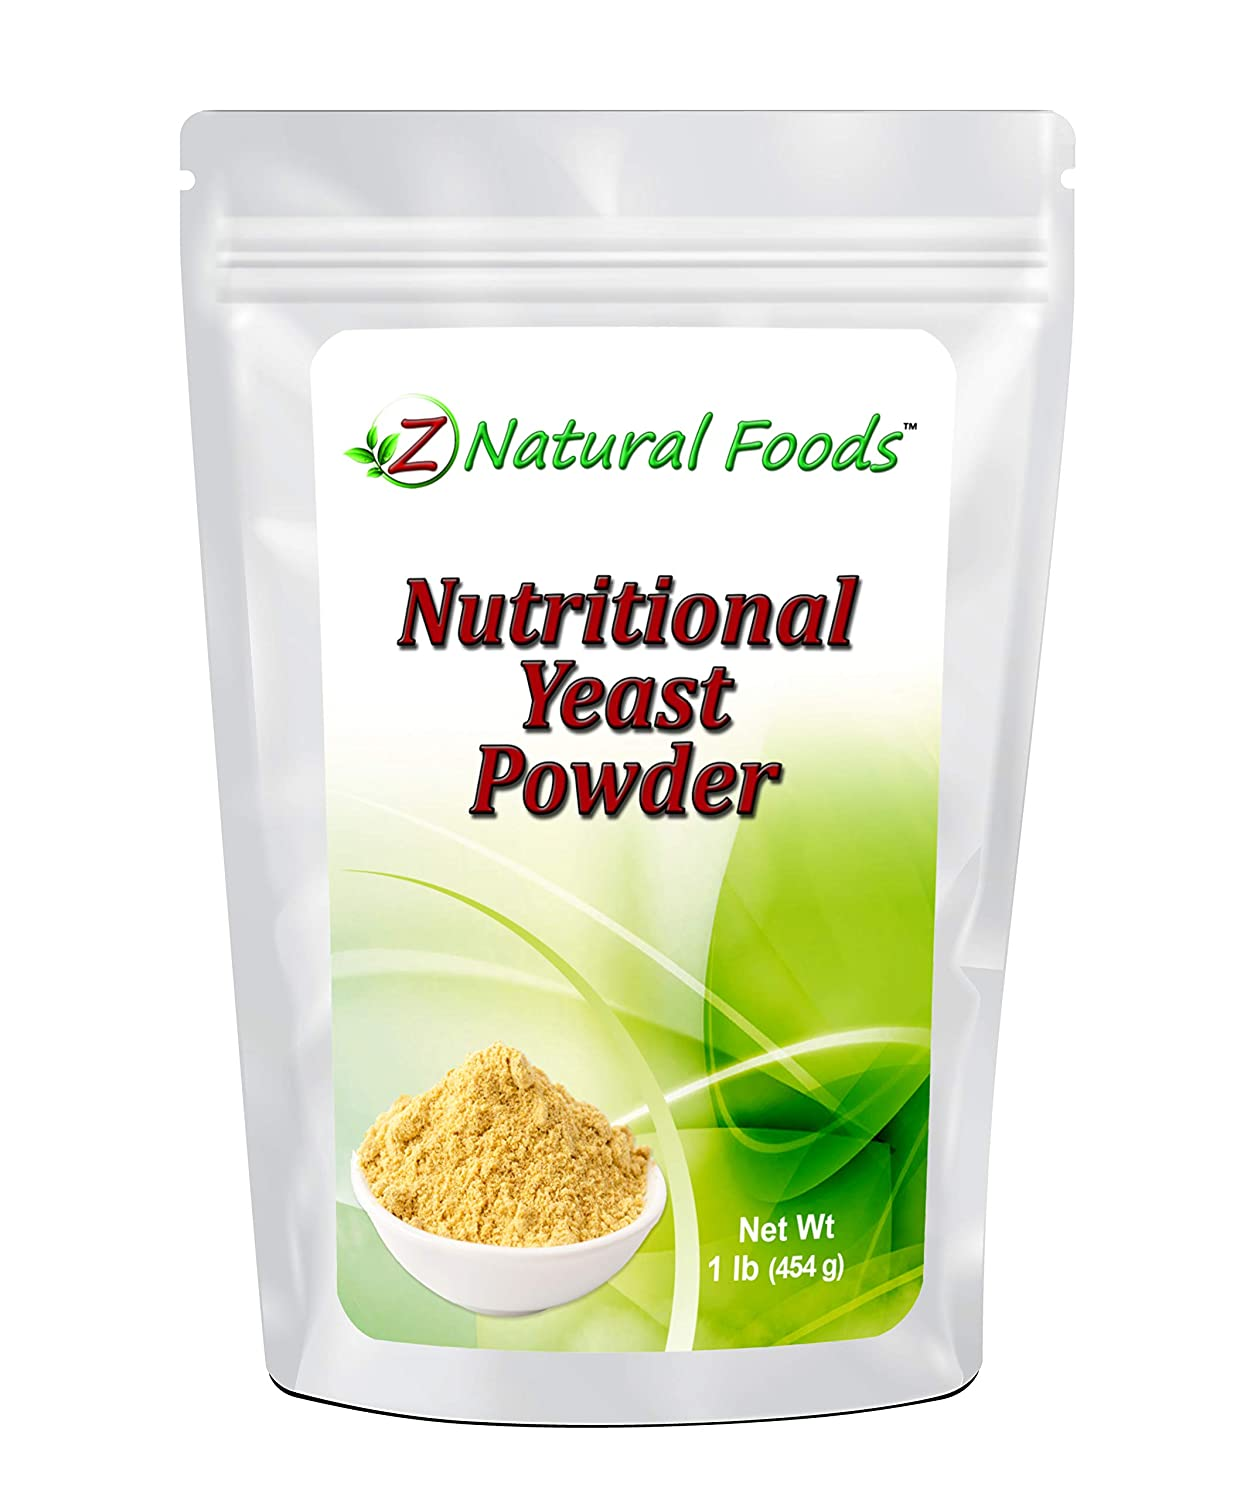 Premium Nutritional Yeast Powder - 1 lb - Fortified, Gluten Free, Non GMO, Vegan - Delicious Cheesy Taste - High In B Vitamins - Plant Protein Perfect For Vegan & Vegetarian Diets